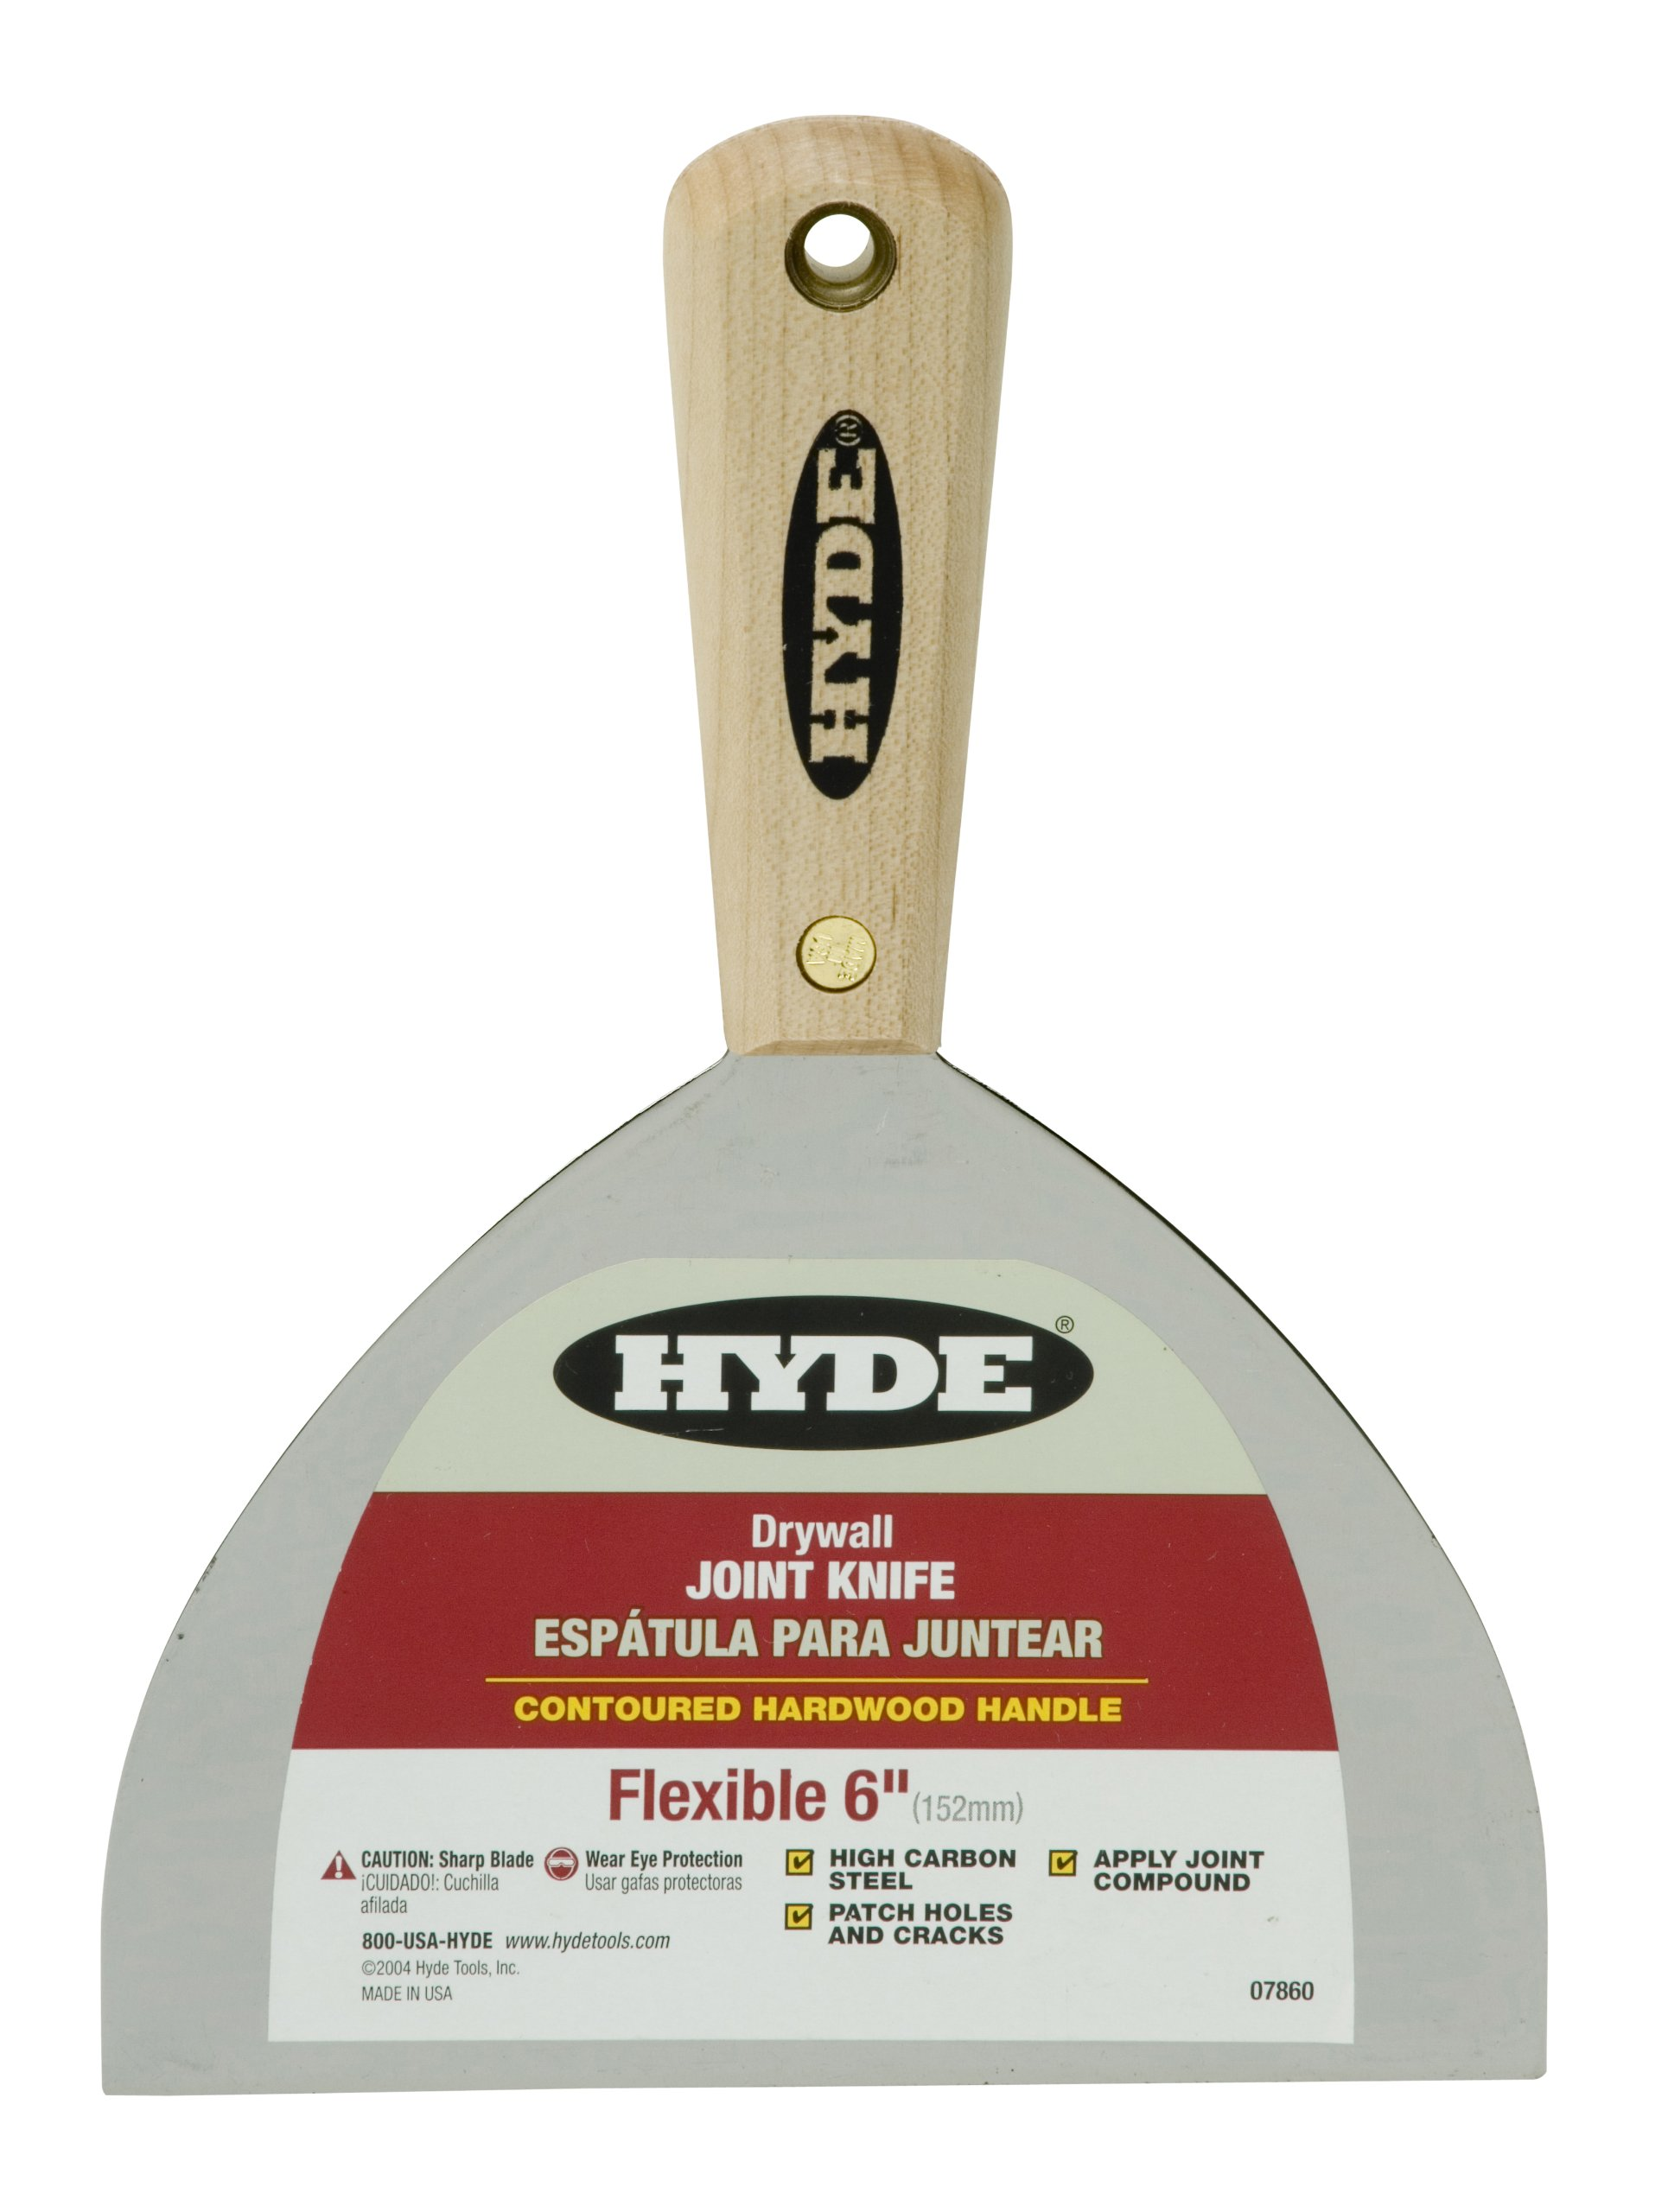 Hyde Tools 7860 6-Inch Flexible Joint Knife with Hardwood Handle